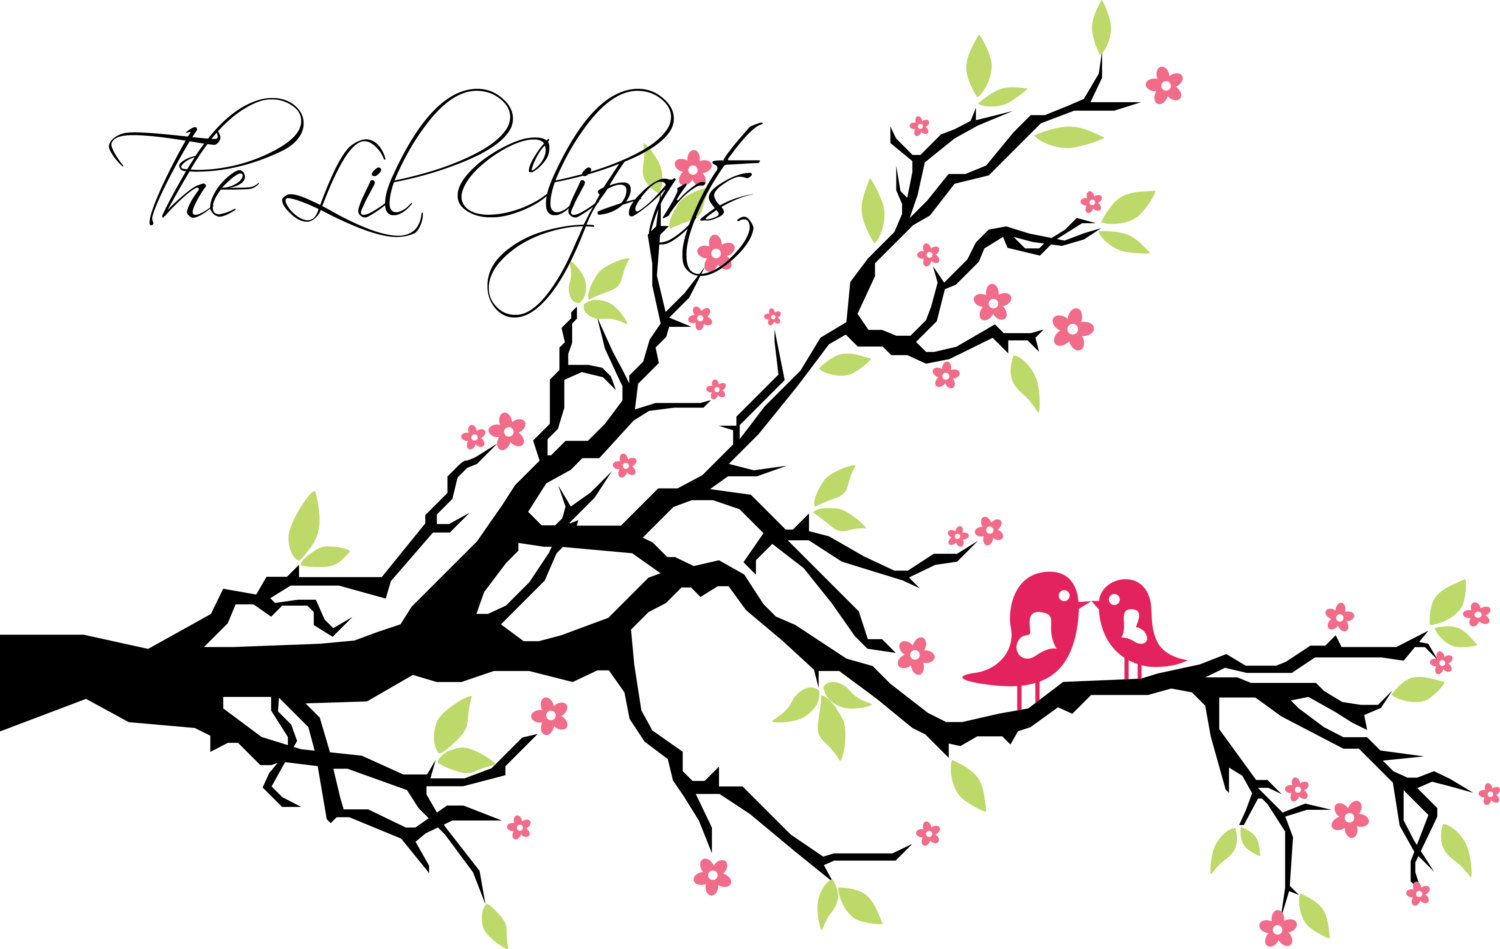 Floral Clipart Flower Clipart Tree Clipart by TheLilCliparts.